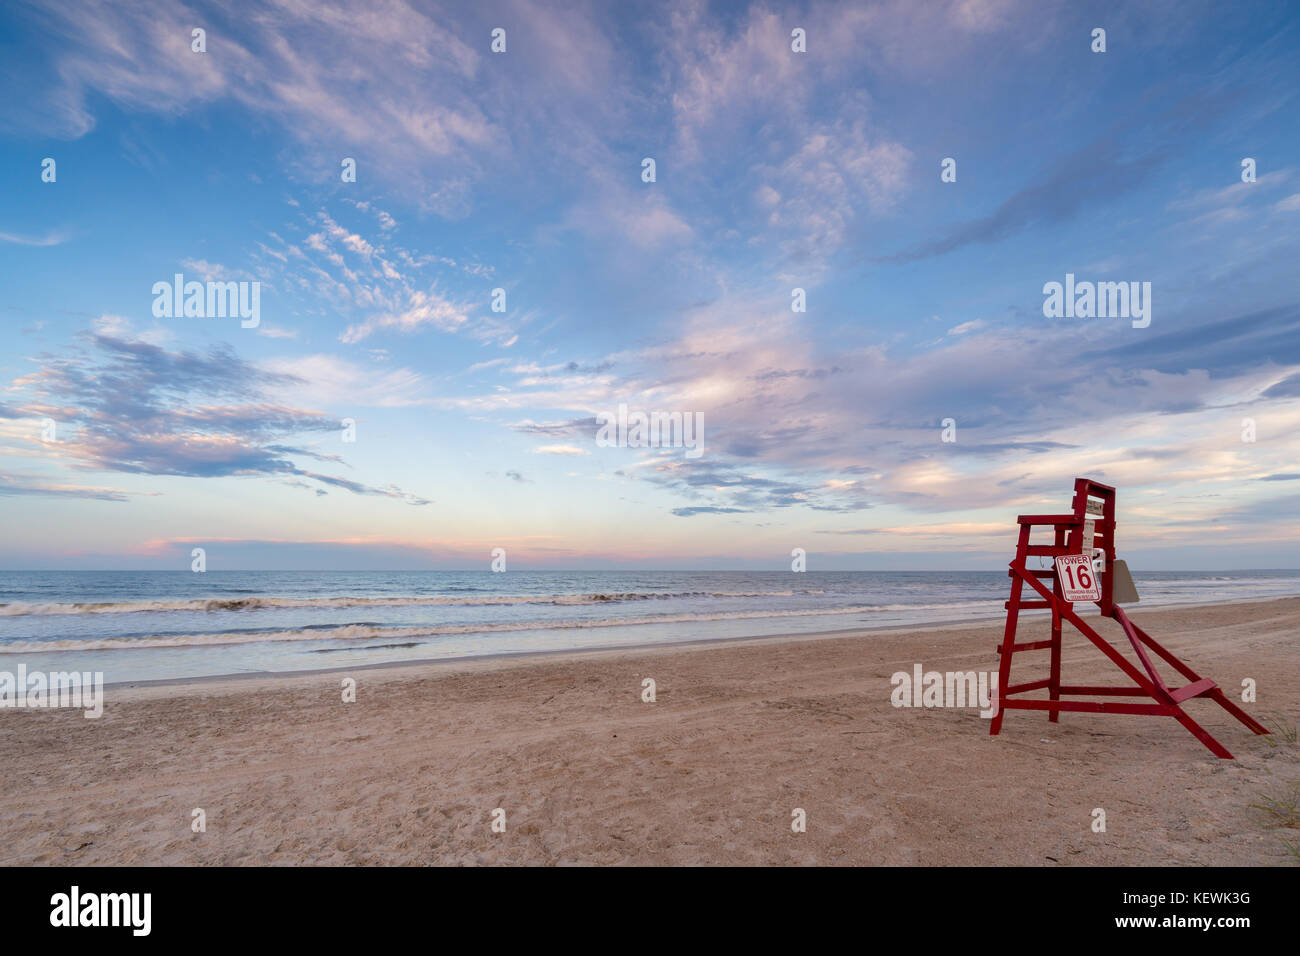 Tranquil and relaxing American Beach seascape, Amelia Island, Florida - Stock Image